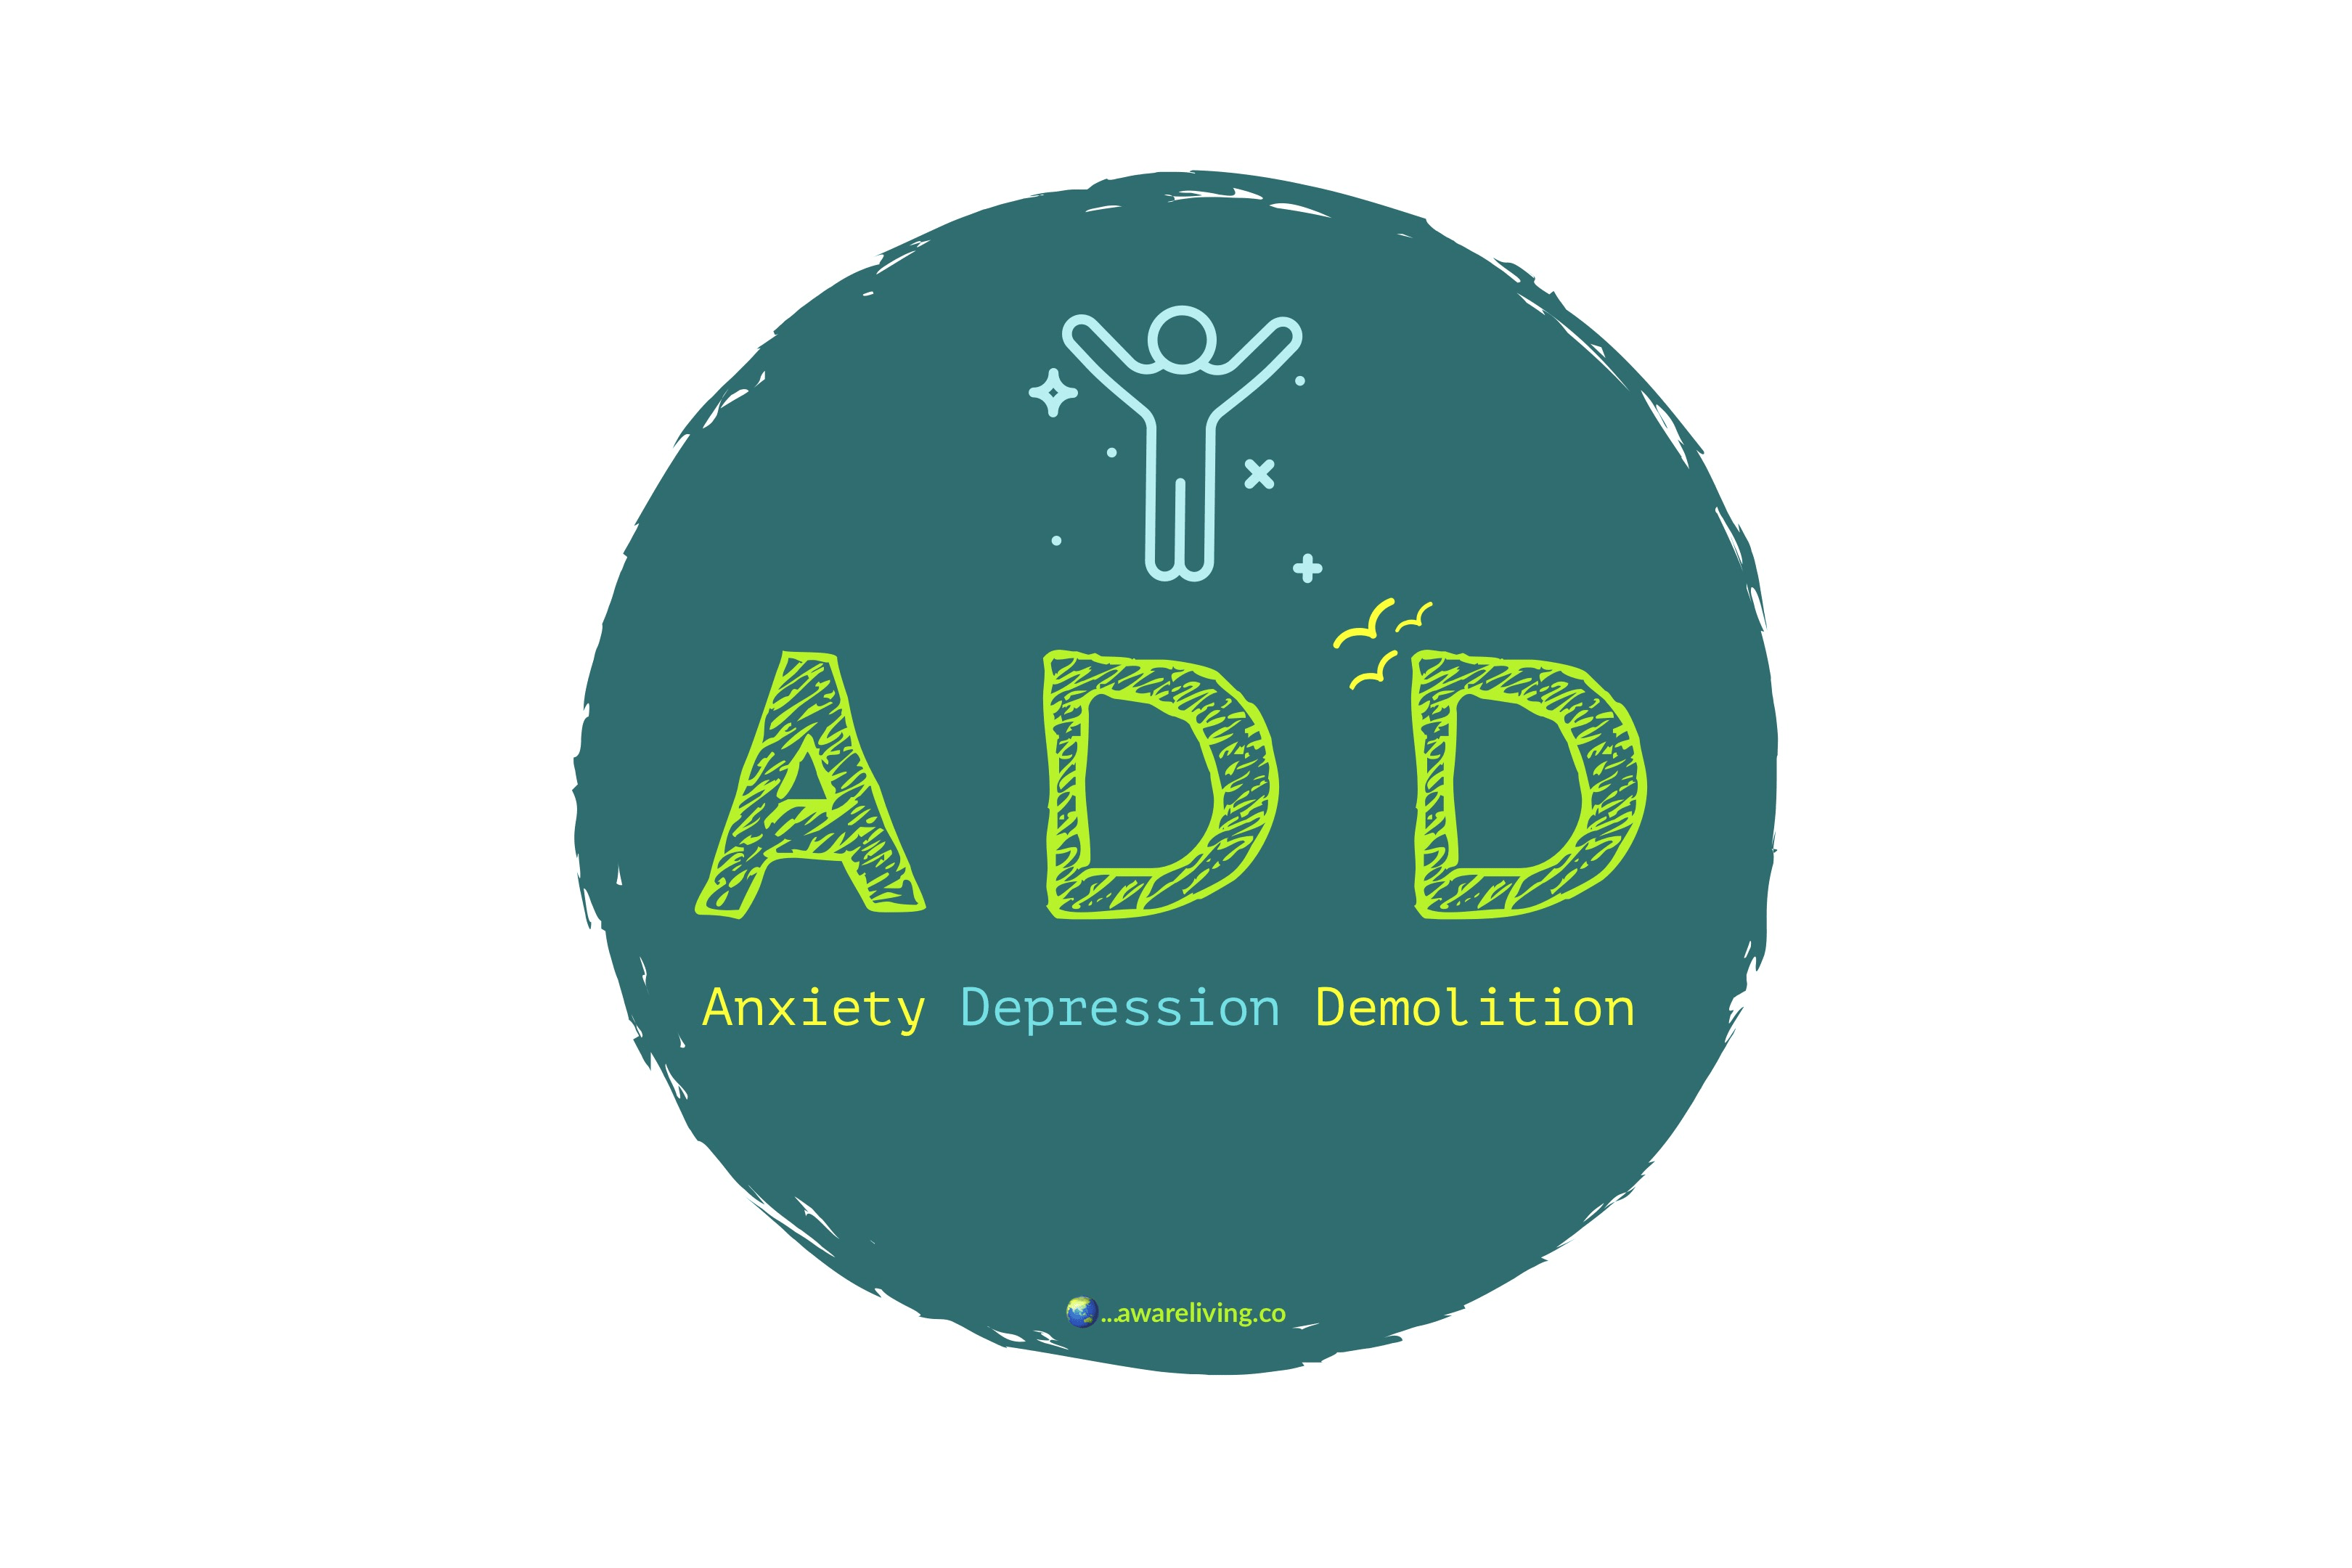 Anxiety Depression Demolition